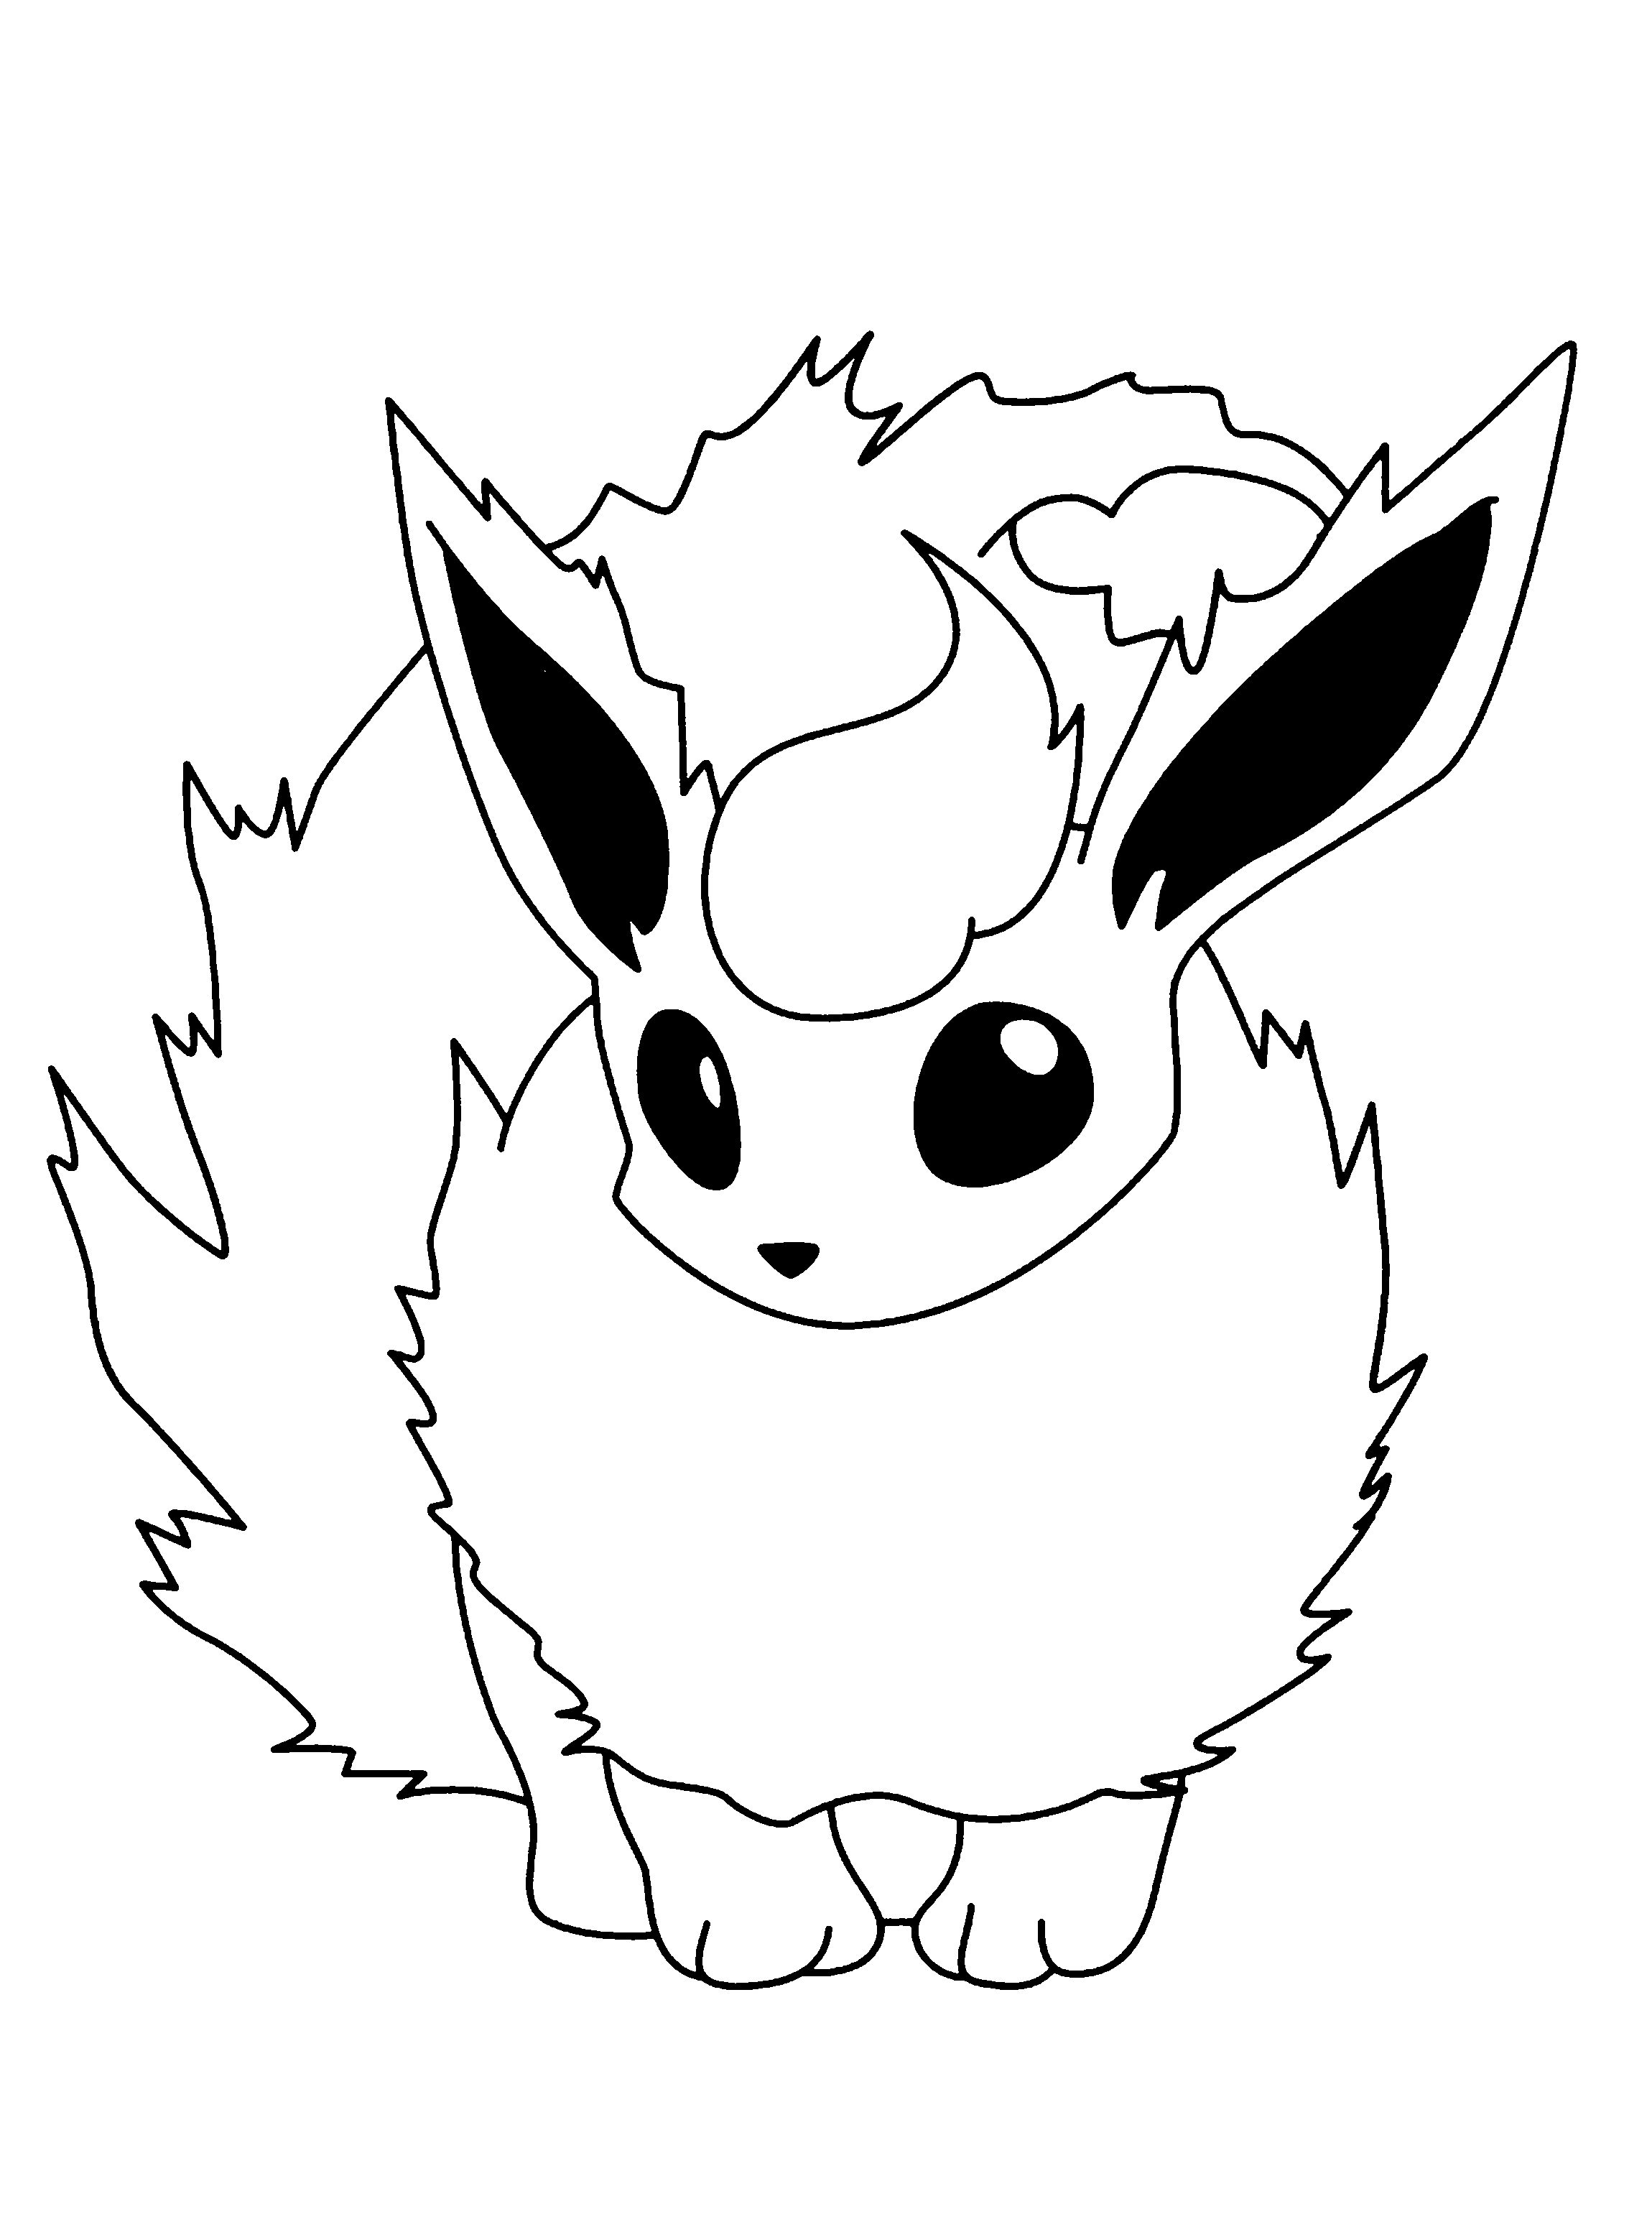 pokemon colouring pages online free pokemon coloring pages join your favorite pokemon on an pages online pokemon colouring free